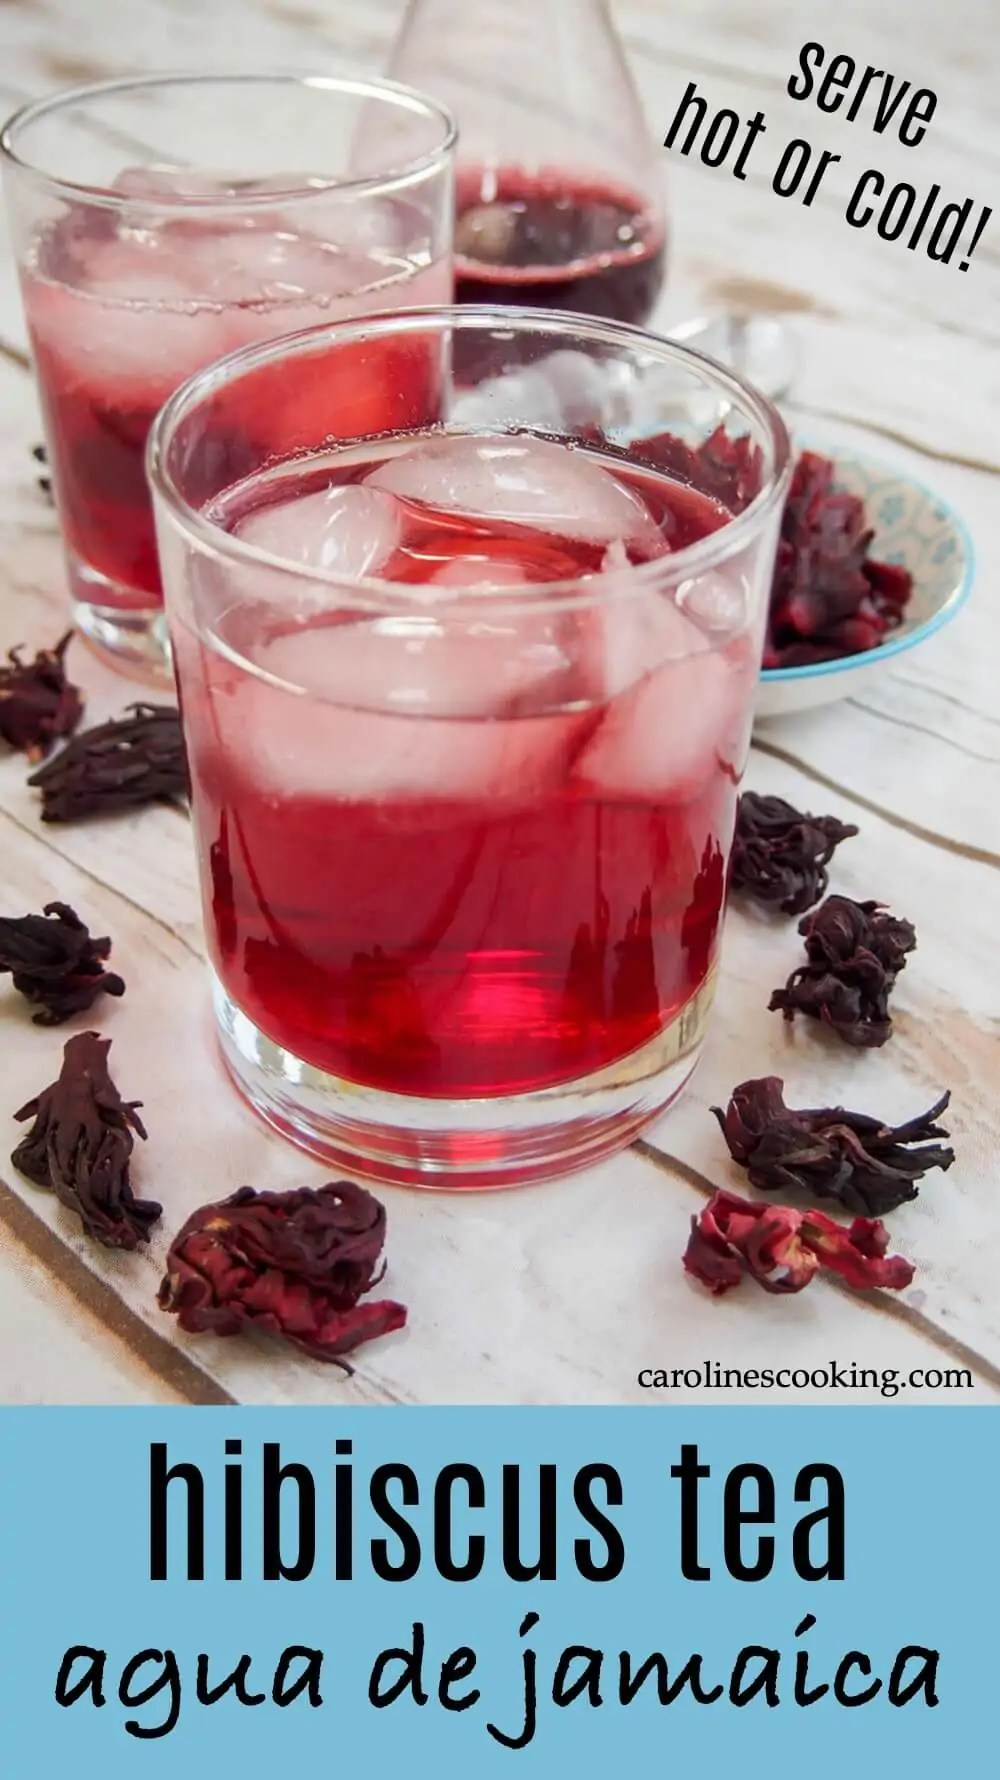 Agua de jamaica, hibiscus tea, is a wonderfully refreshing drink that's so easy to make. Slightly floral, with hints of pomegranate and cranberry, it's as delicious as it is beautiful. #nonalcoholicdrink #mexicandrink #hibiscus #colddrink